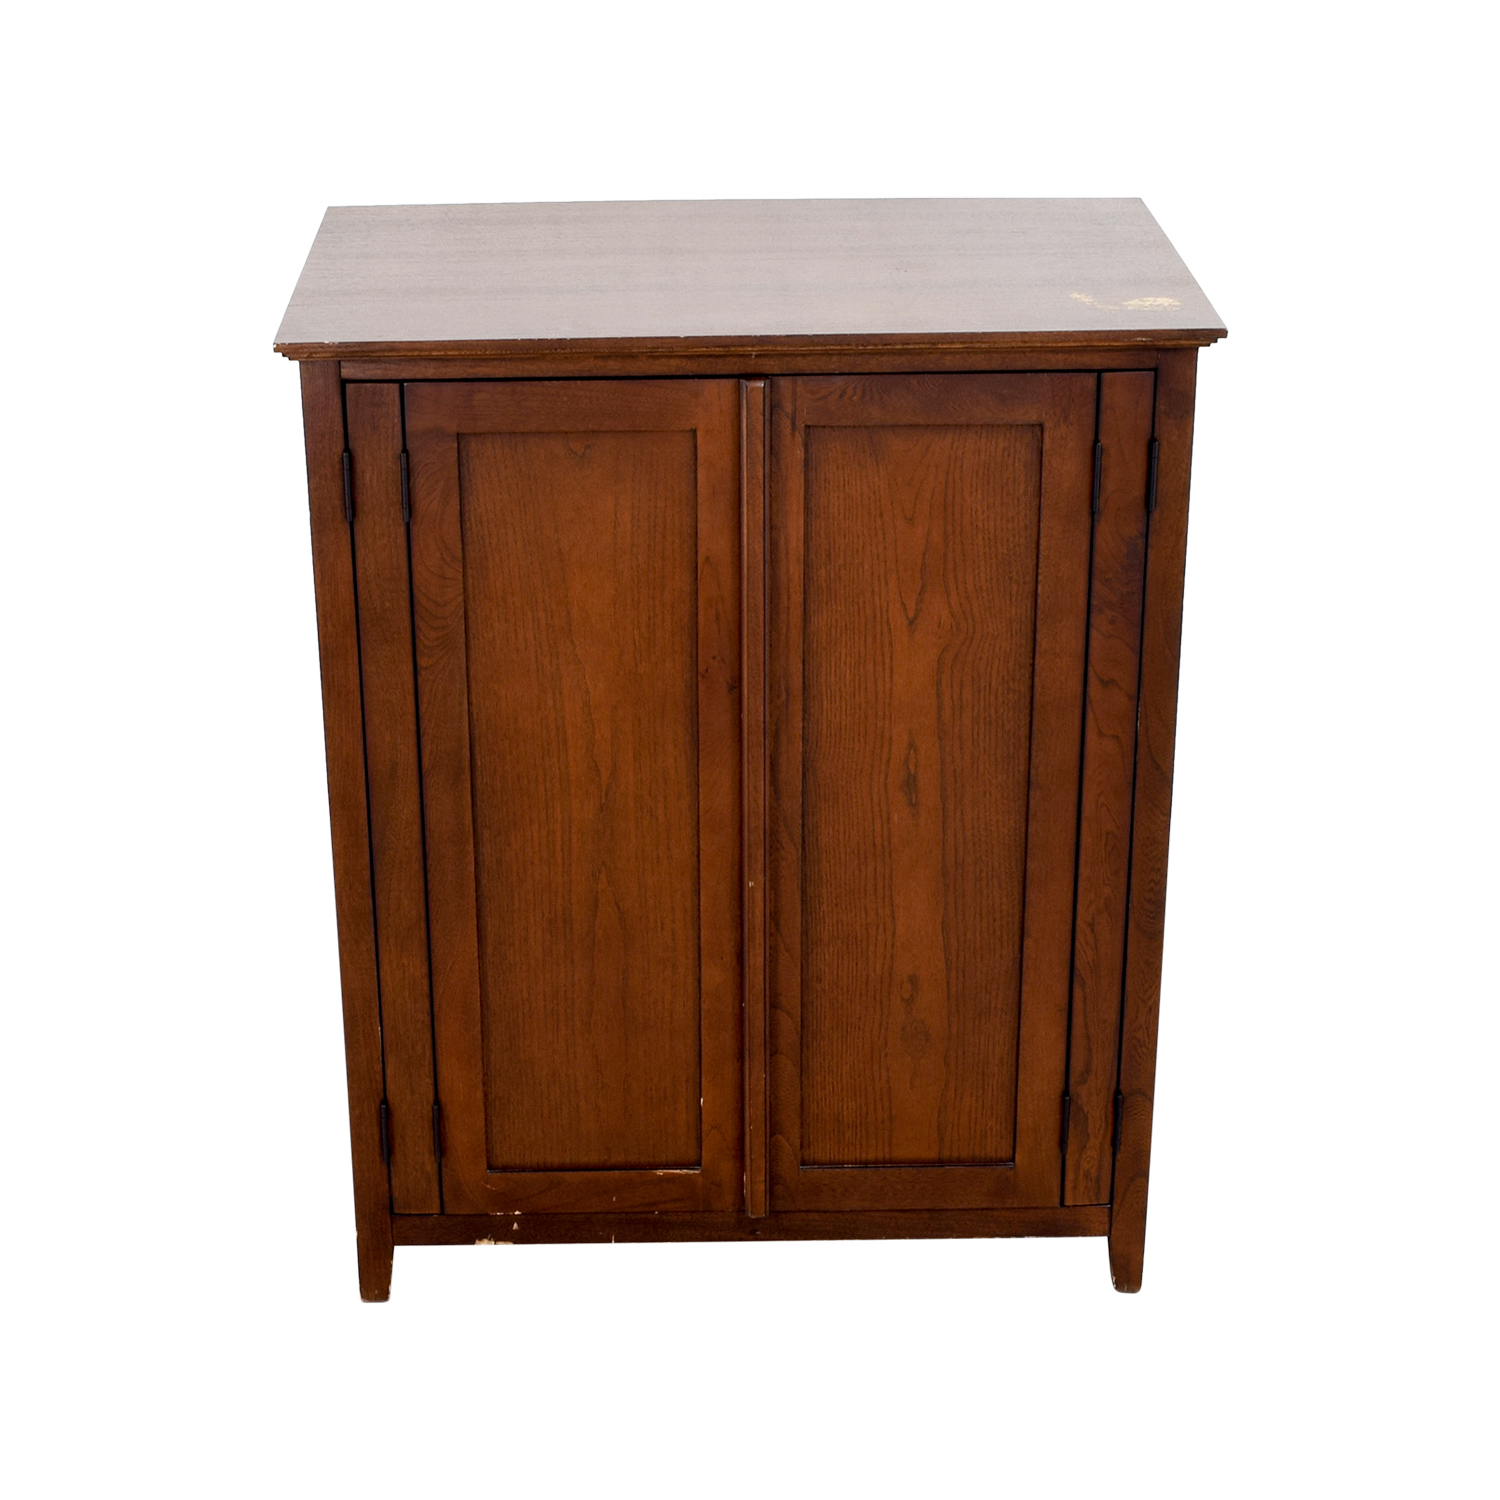 Dark Wood TV or Clothing Armoire